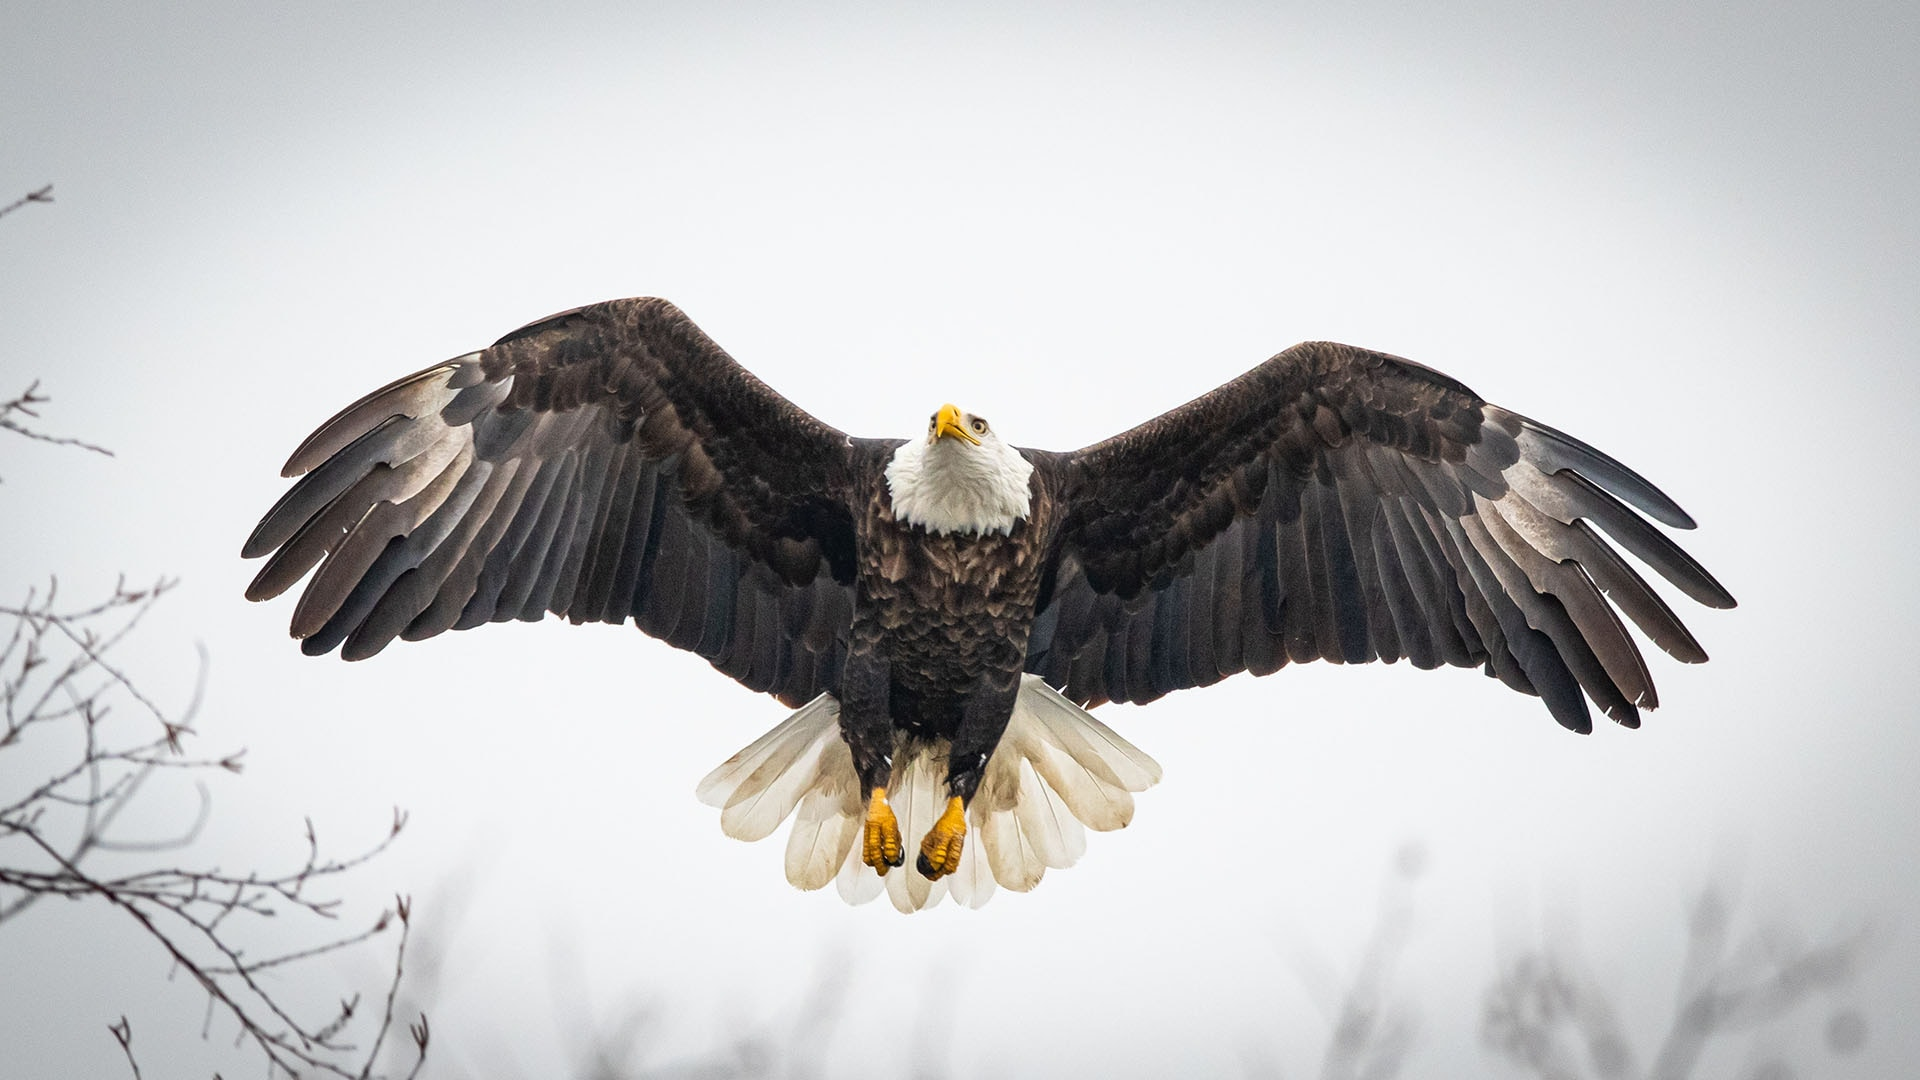 A bald eagle soars high in the air along the Kaskaskia River in Carlyle, Illinois.